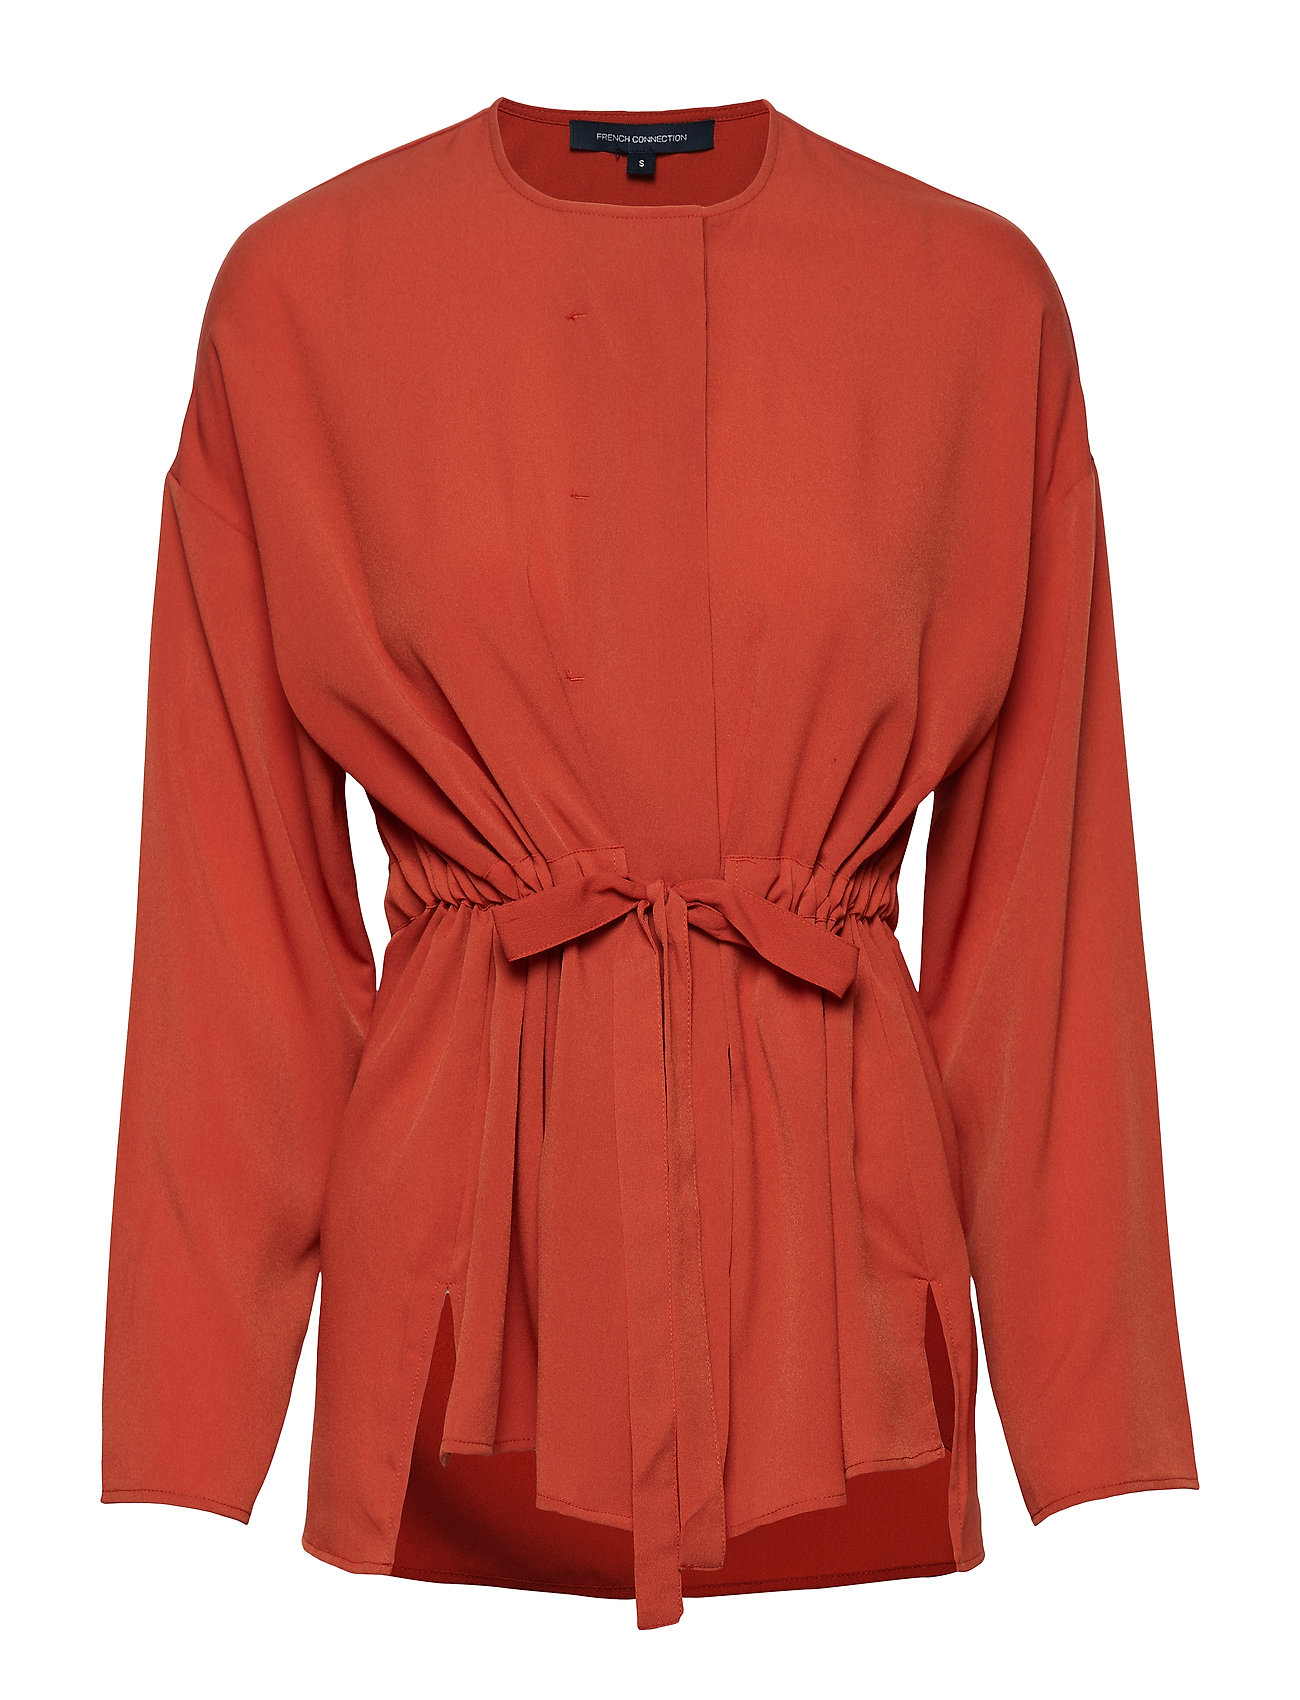 FRENCH CONNECTION Crepe Lght Sld Gathrd Waist Bl Bluse Langärmlig Orange FRENCH CONNECTION